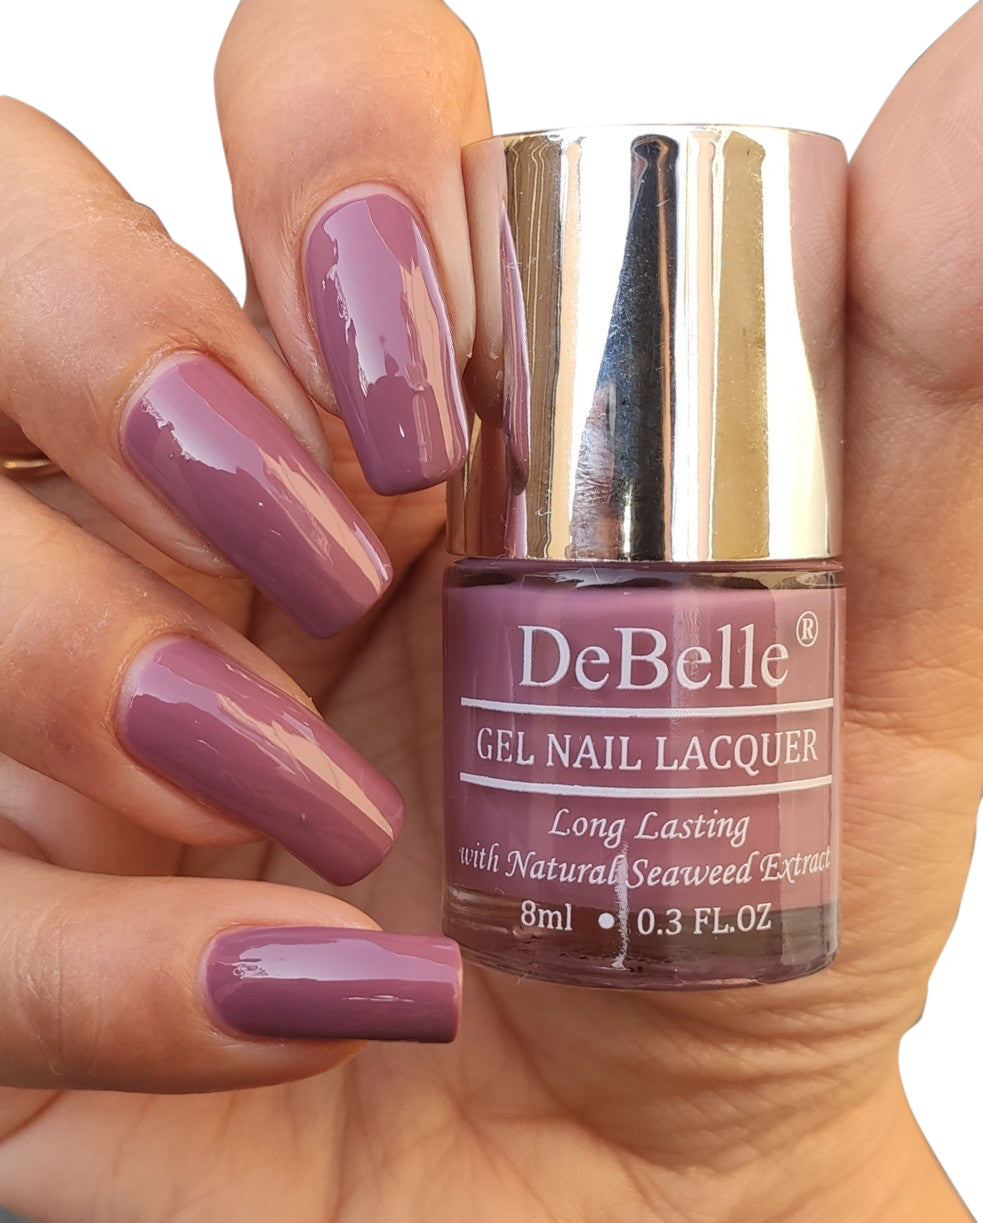 DeBelle Gel Nail Lacquer Laura Aura  (Light Mauve Nail Polish), 8ml